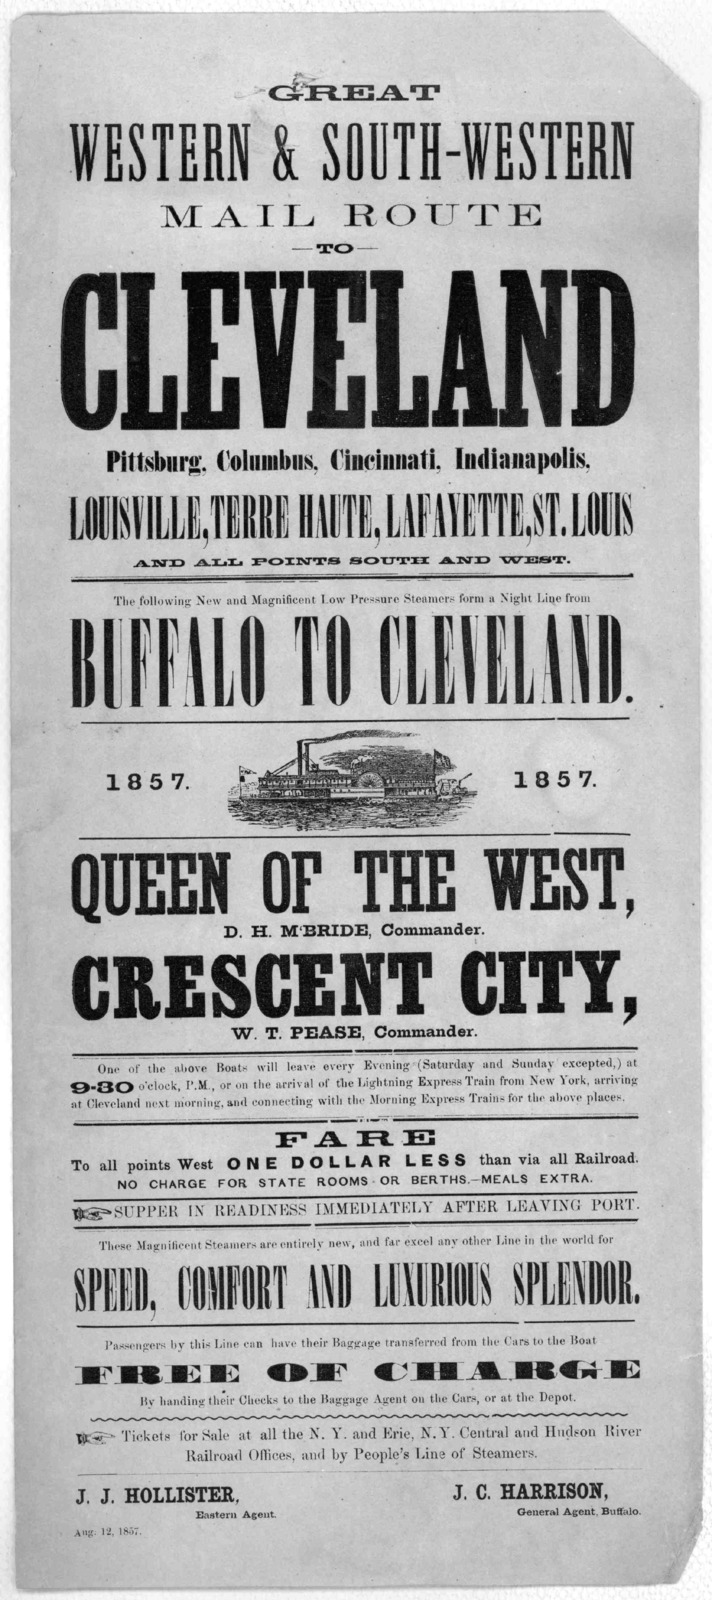 Great western & south-western mail route to Cleveland Pittsburg, Columbus, Cincinnati, Indianapolis, Louisville, Terre Haute, Lafayette, St. Louis and all points south and west The following lines and magnificent low pressure steamers form a nig